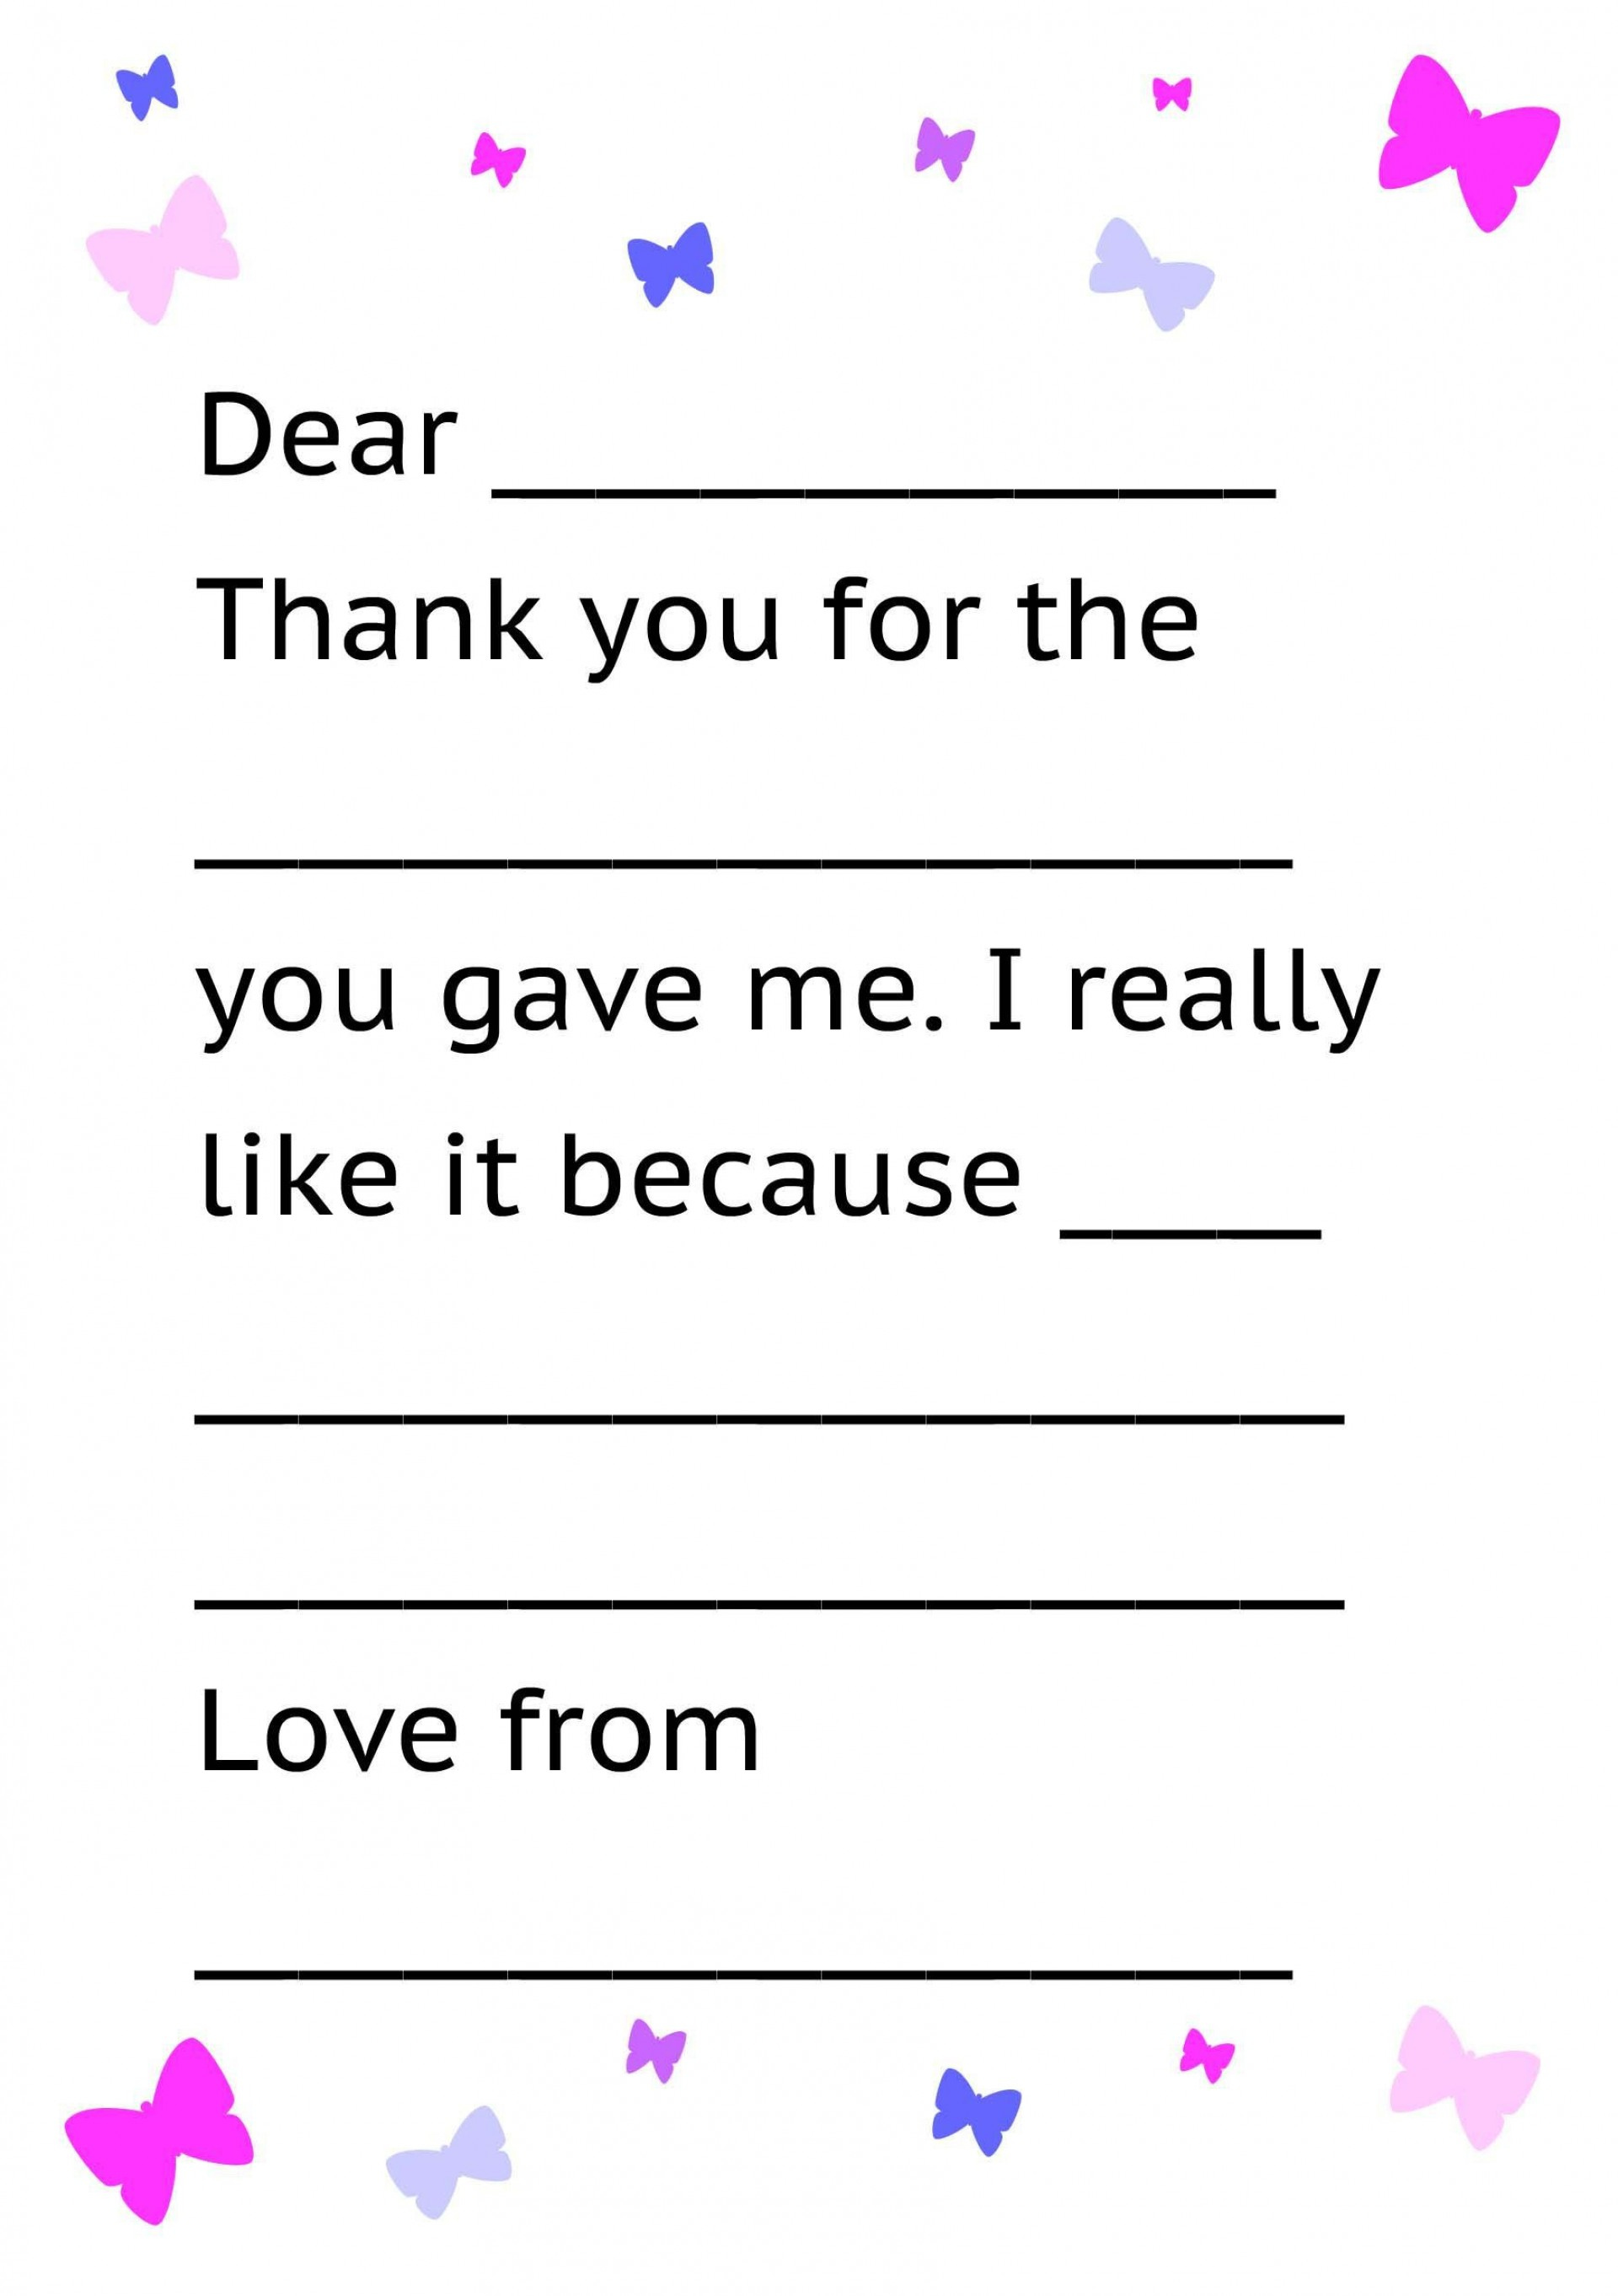 001 Sensational Thank You Note Template For Kid Example  Kids Child Pdf Letter1920